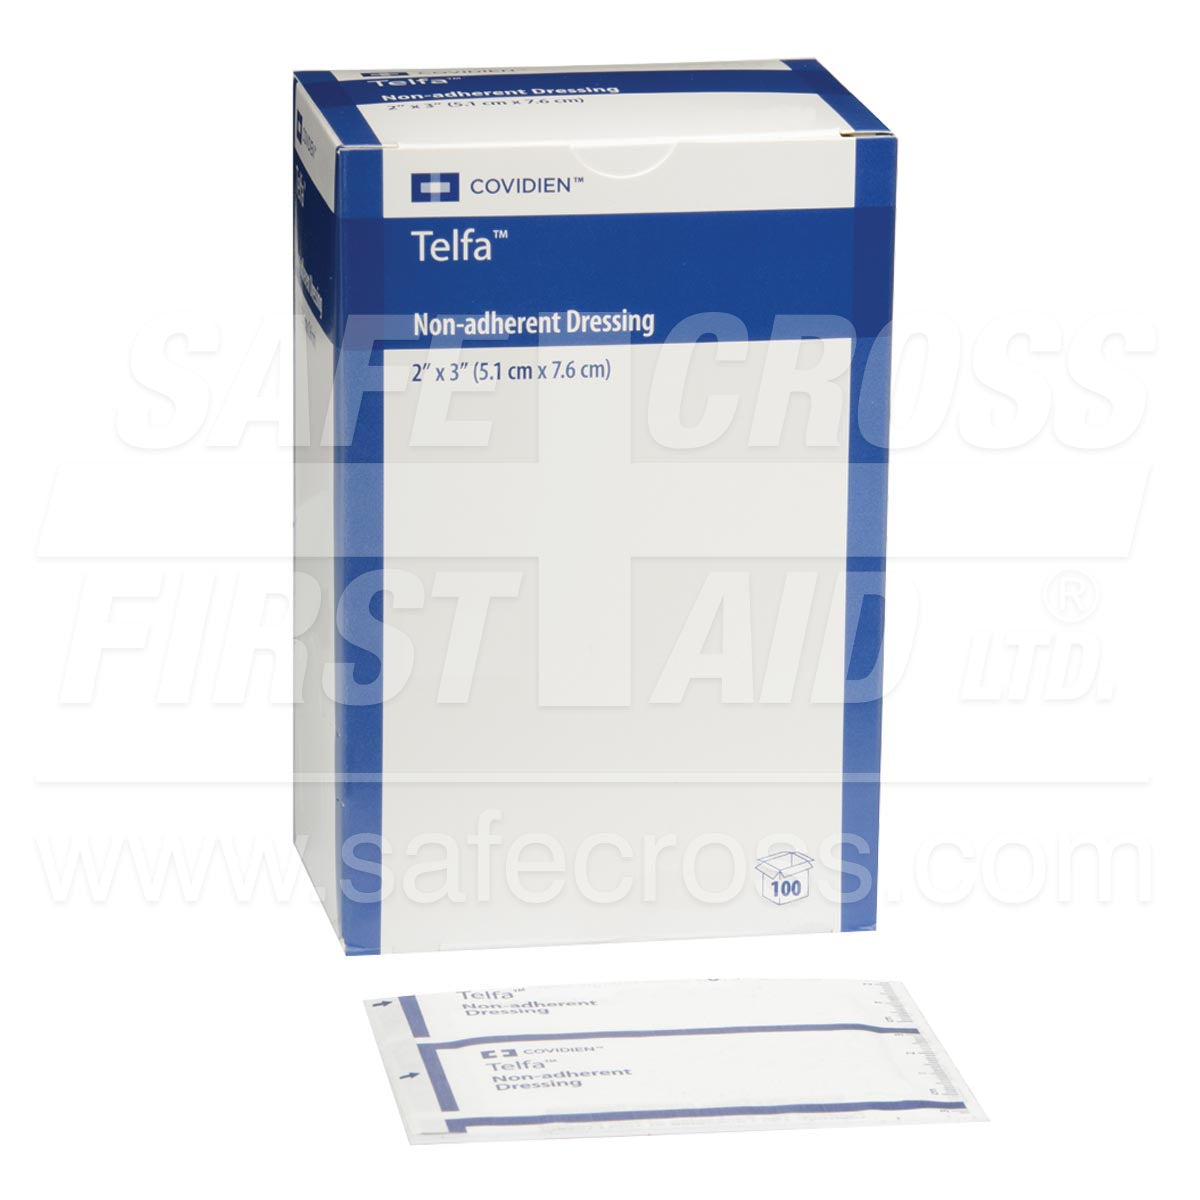 Telfa™ Non-Adherent Dressings Sterile